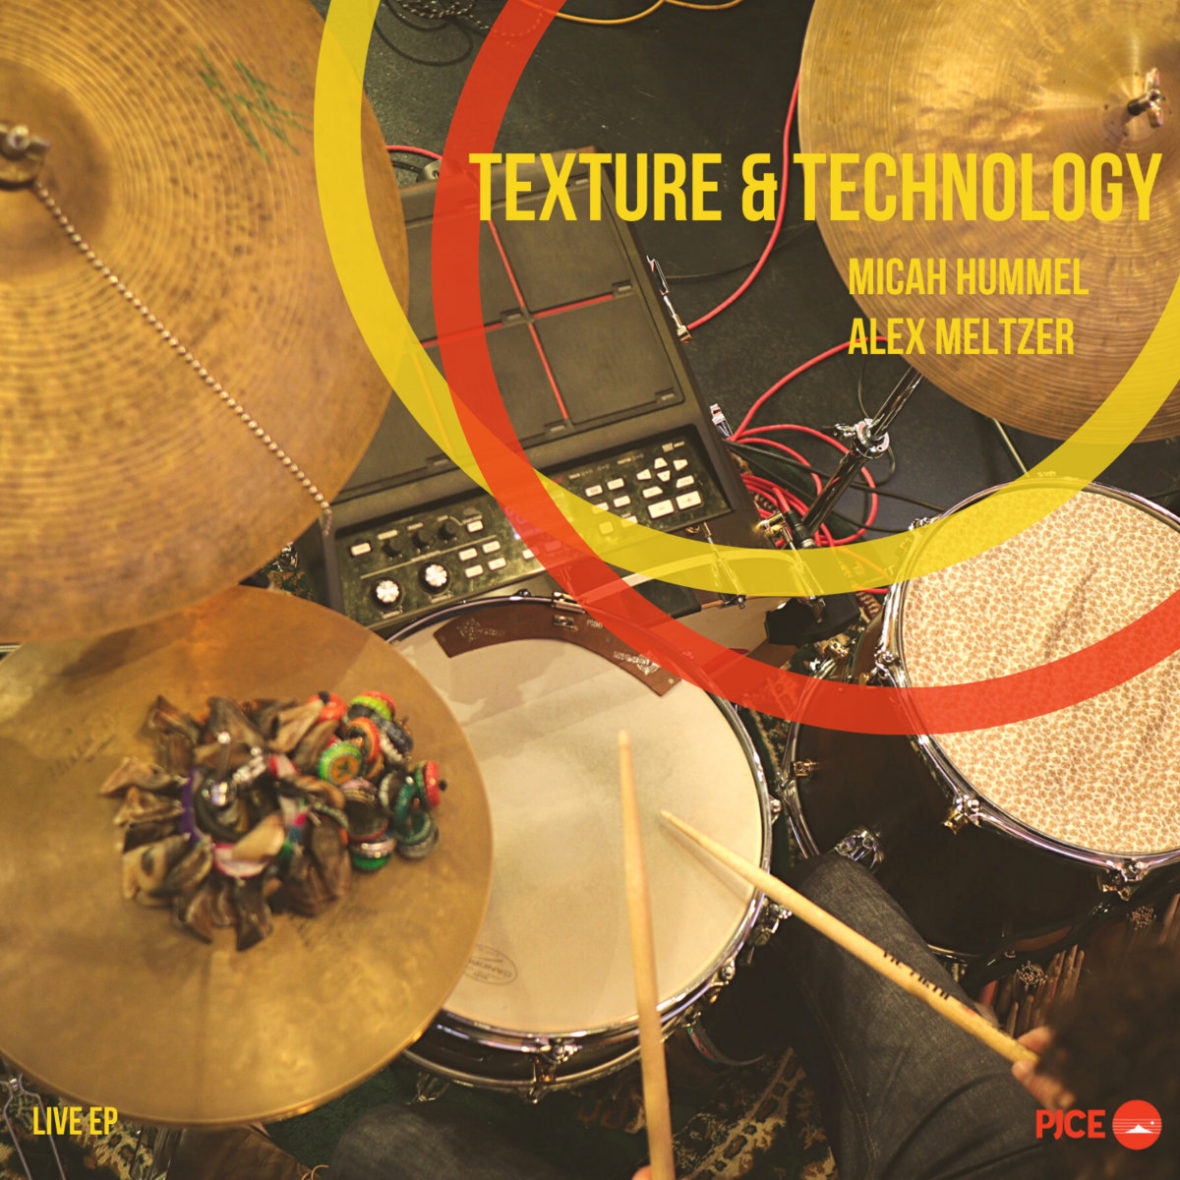 The cover for Texture & Technology